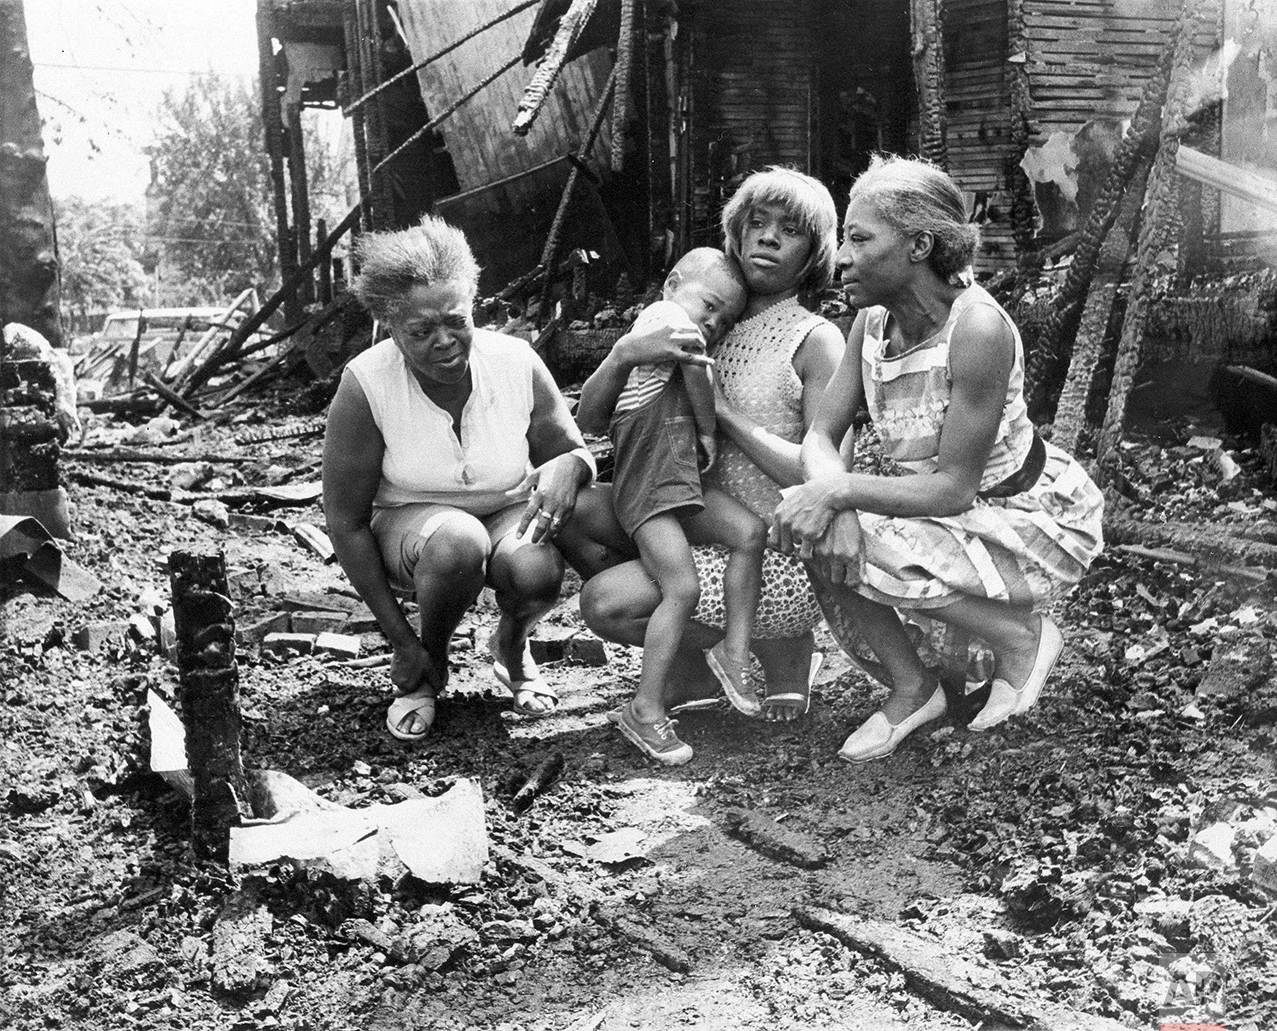 Three women and a child visit the charred ruins of what used to be their home in the 12th Steet area of Detroit, Mich., July 26, 1967. Homes were burned out by fire bombs thrown by rioters. The women are typical of many innocent people who lost all of their possessions in the fires. from Left are: Mrs. Willie Moore; Mrs. Elizabeth Allen, holding son, Thomas, 3; and Mrs. Louella Underwood. (AP Photo/Detroit News)